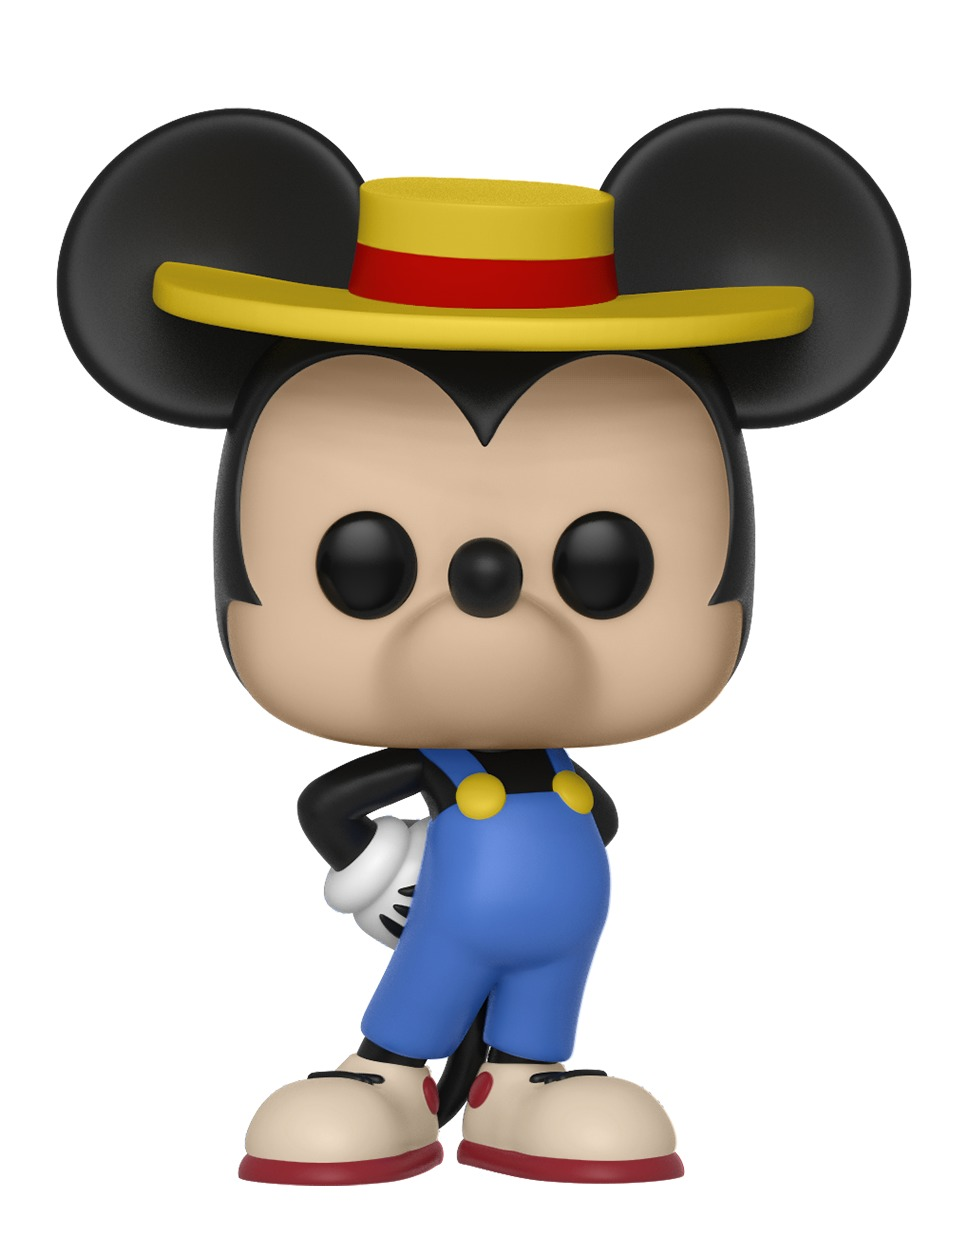 Disney: Mickey Mouse (Whirlwind Ver.) Pop! Vinyl Figure image